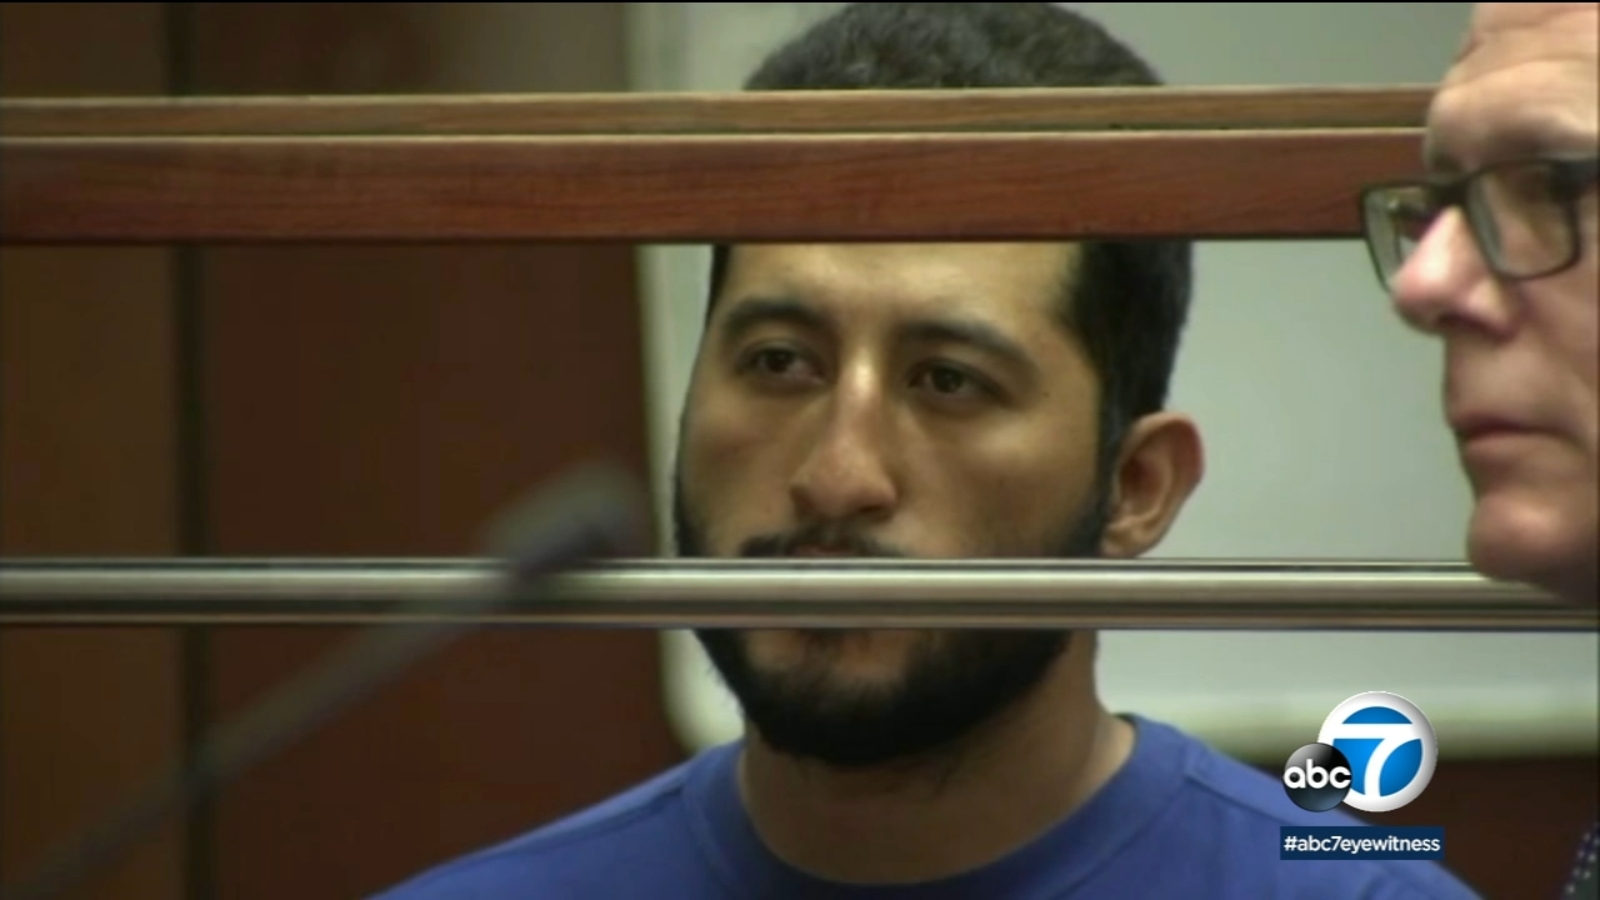 LAPD officer charged in suspected DUI crash that killed 3 on 605 Freeway pleads not guilty